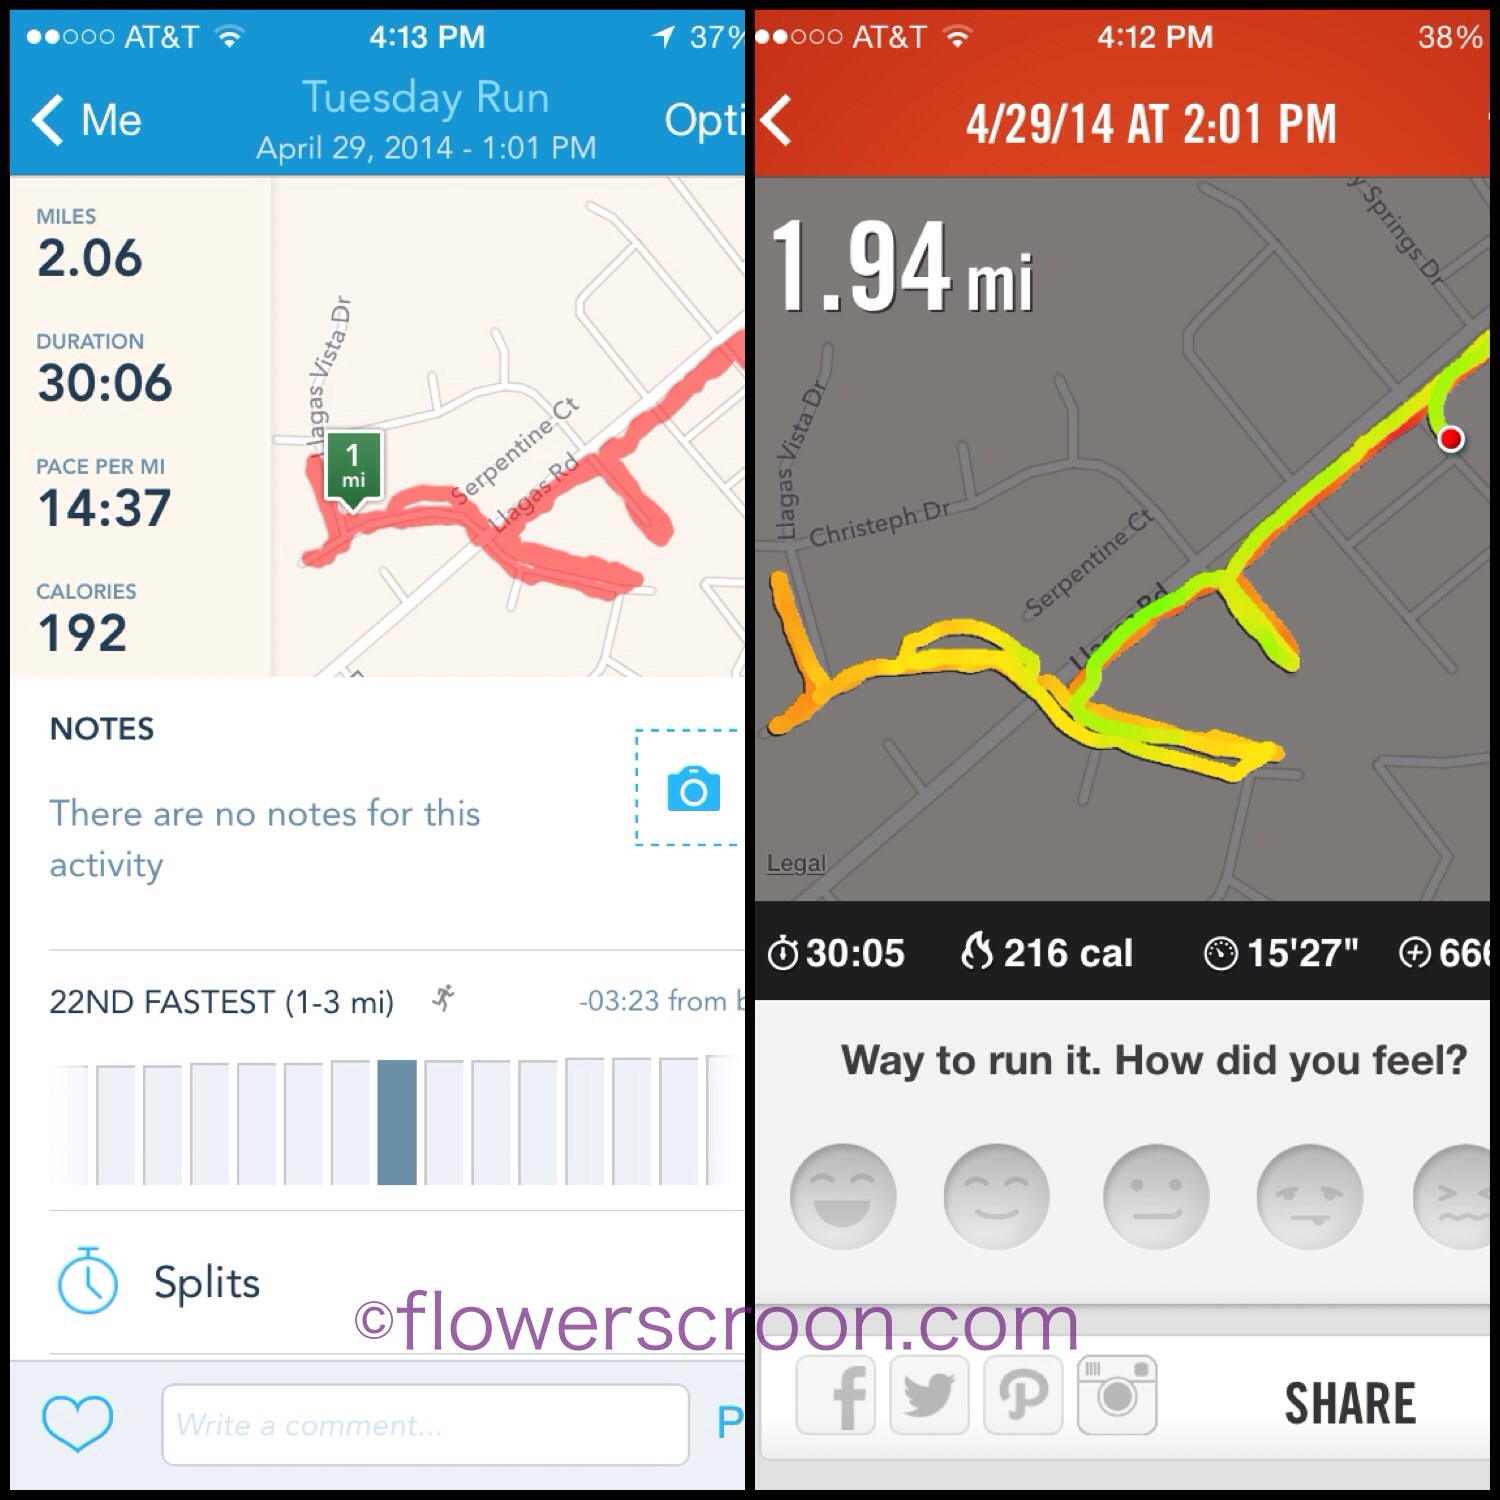 So which is my pace: 14:37 or 15:27?